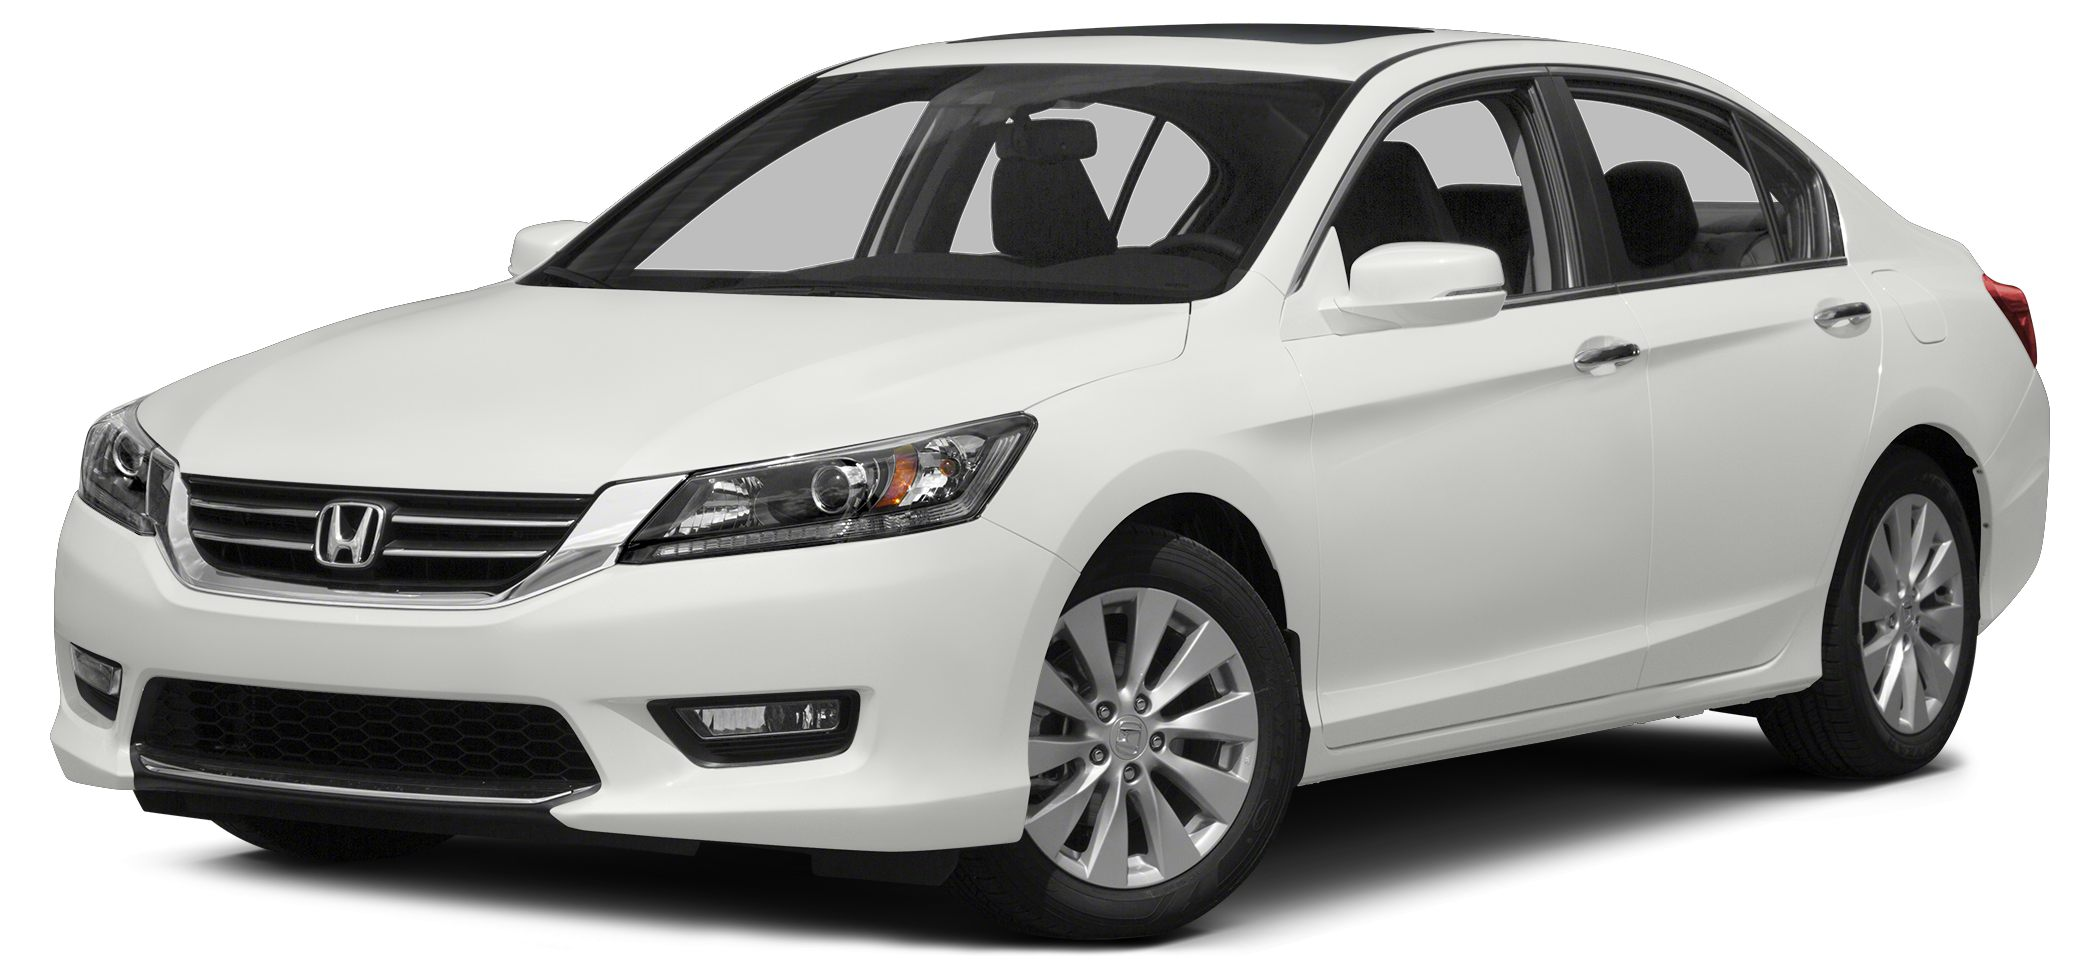 2013 Honda Accord EX-L V6 Miles 21721Color White Orchid Pearl Stock 013433 VIN 1HGCR3F82DA01